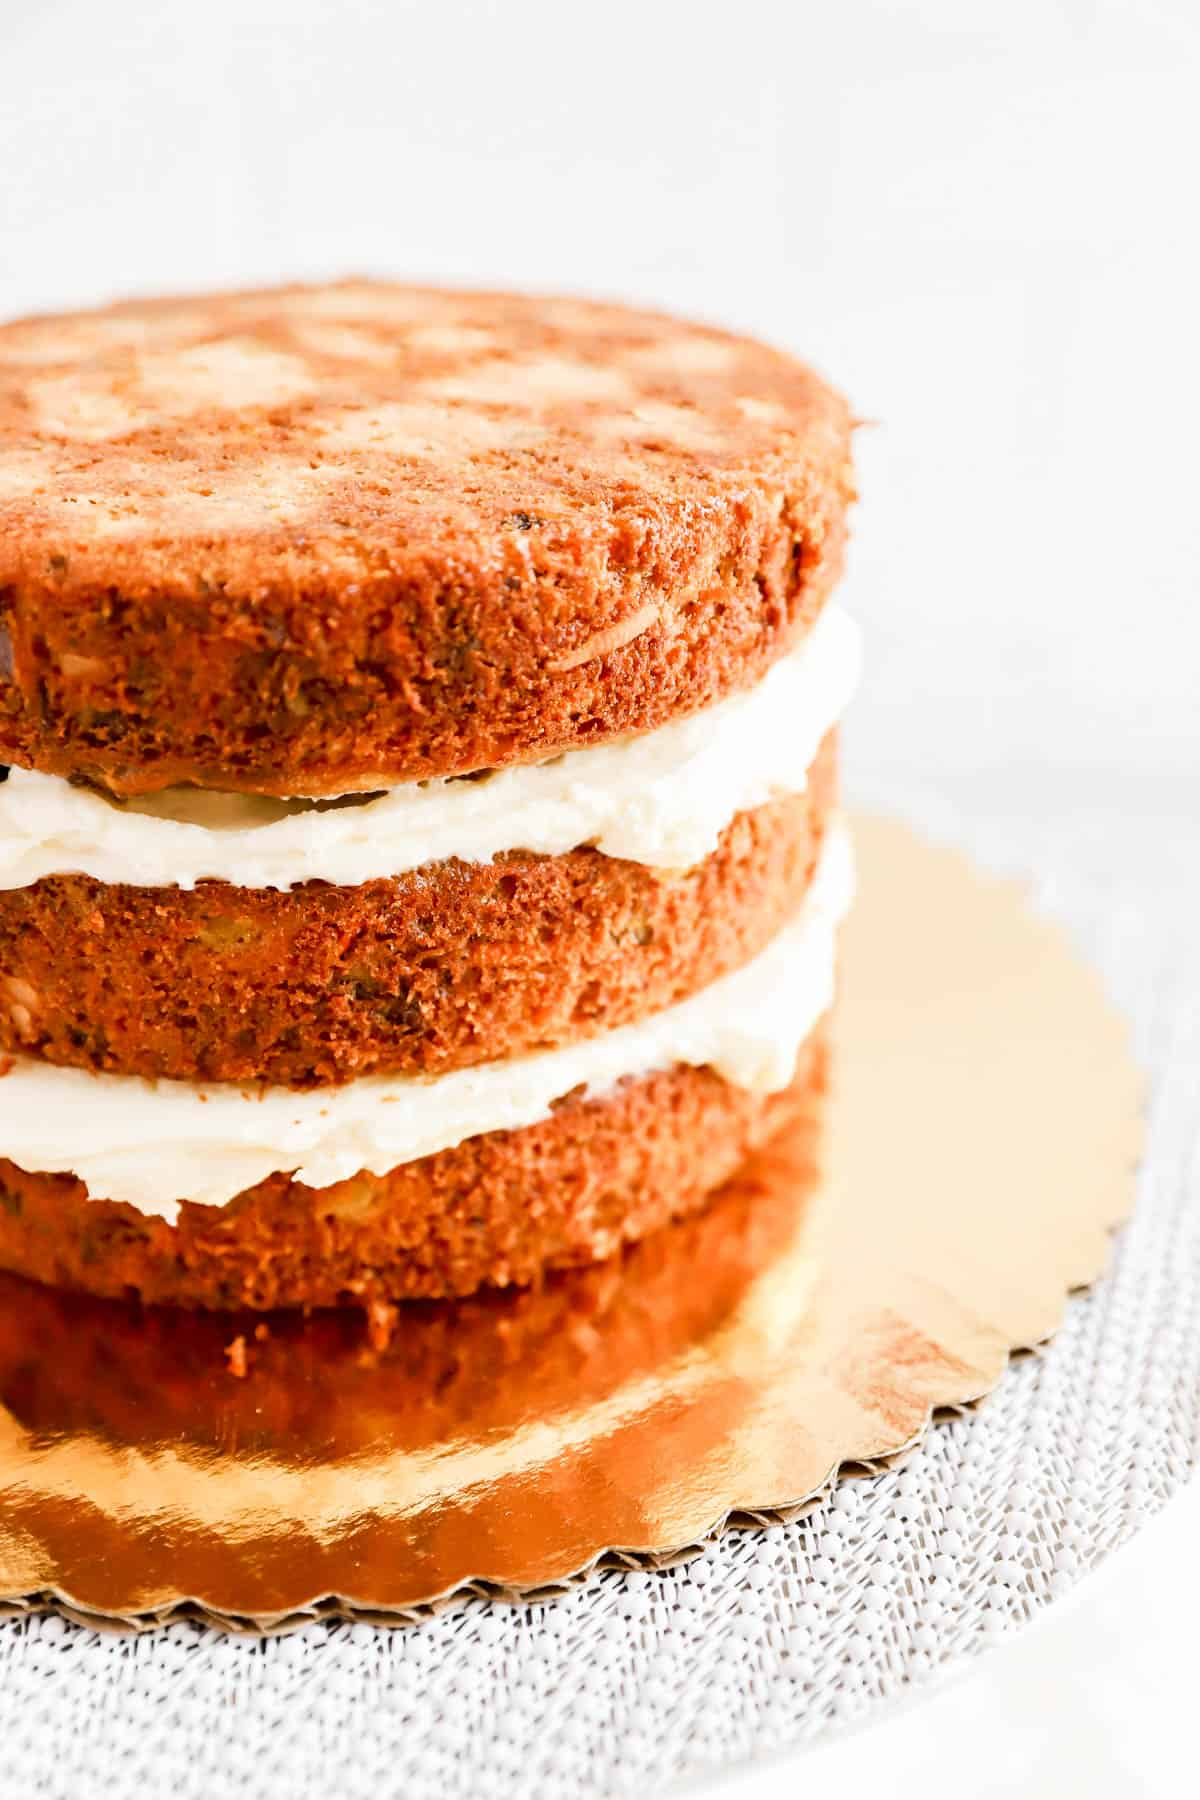 3 baked round carrot cake layers stacked and filled with cream cheese frosting.